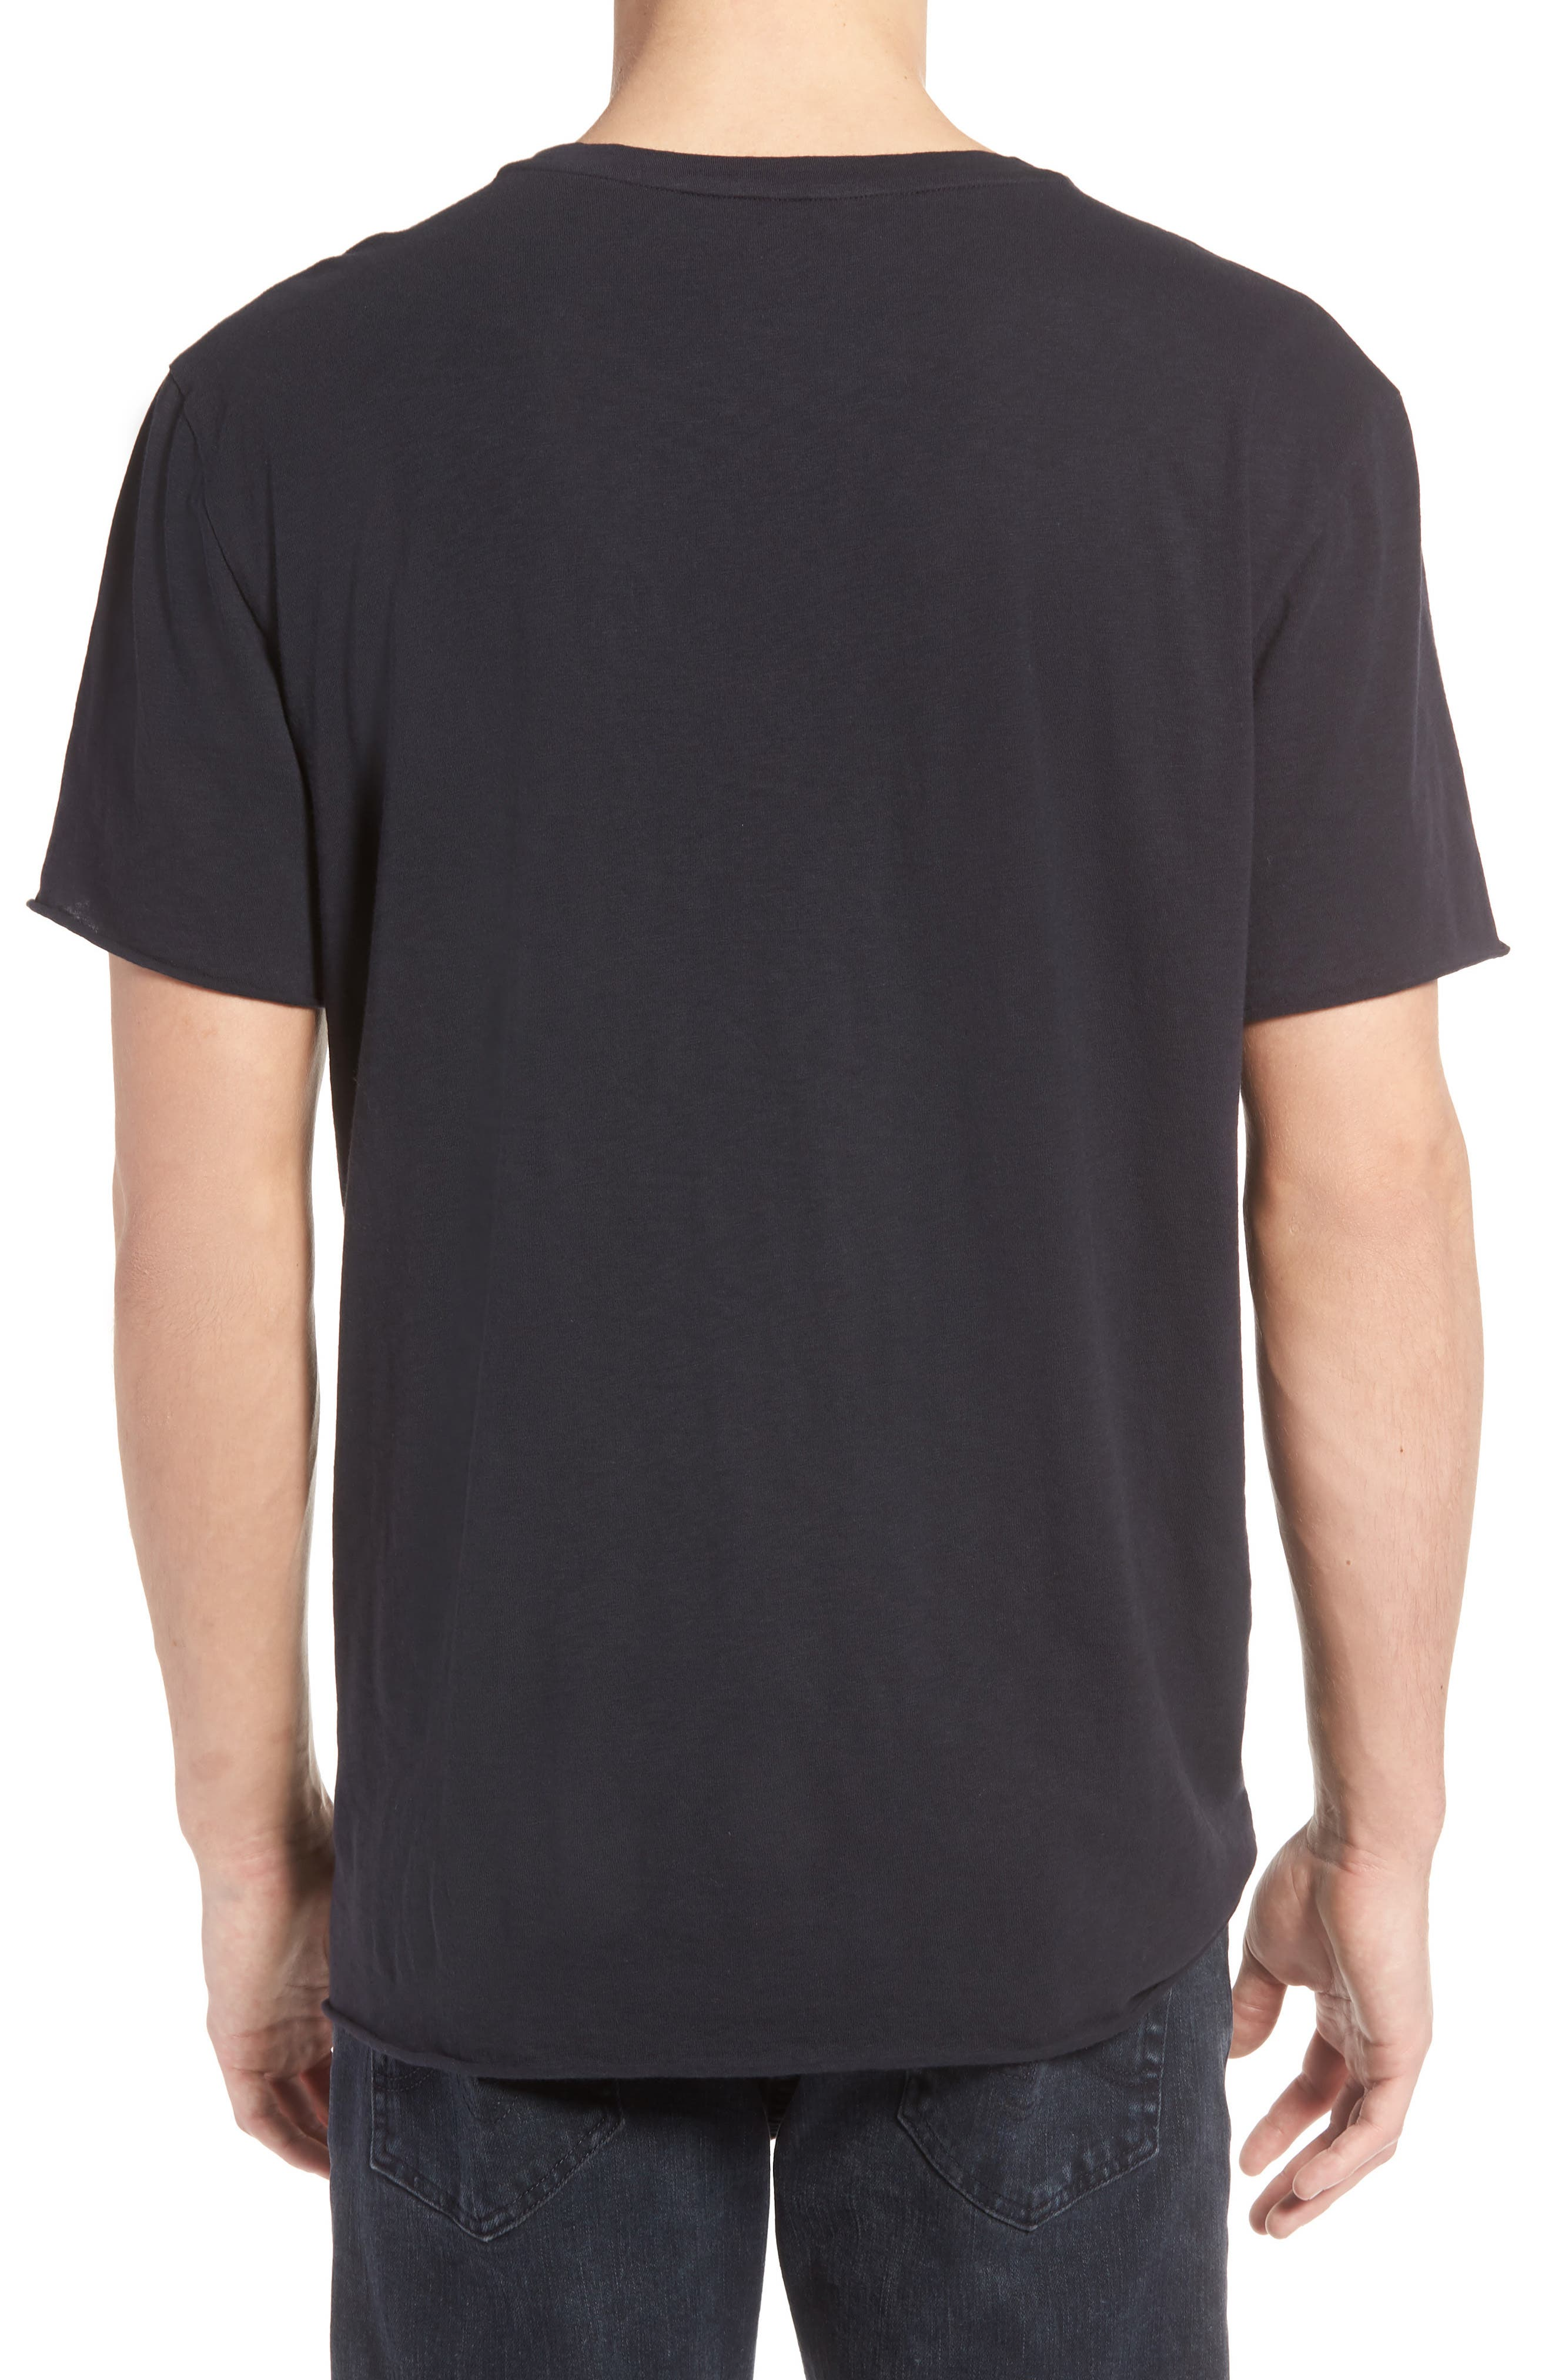 The Who Trim Fit T-Shirt,                             Alternate thumbnail 2, color,                             Black The Who